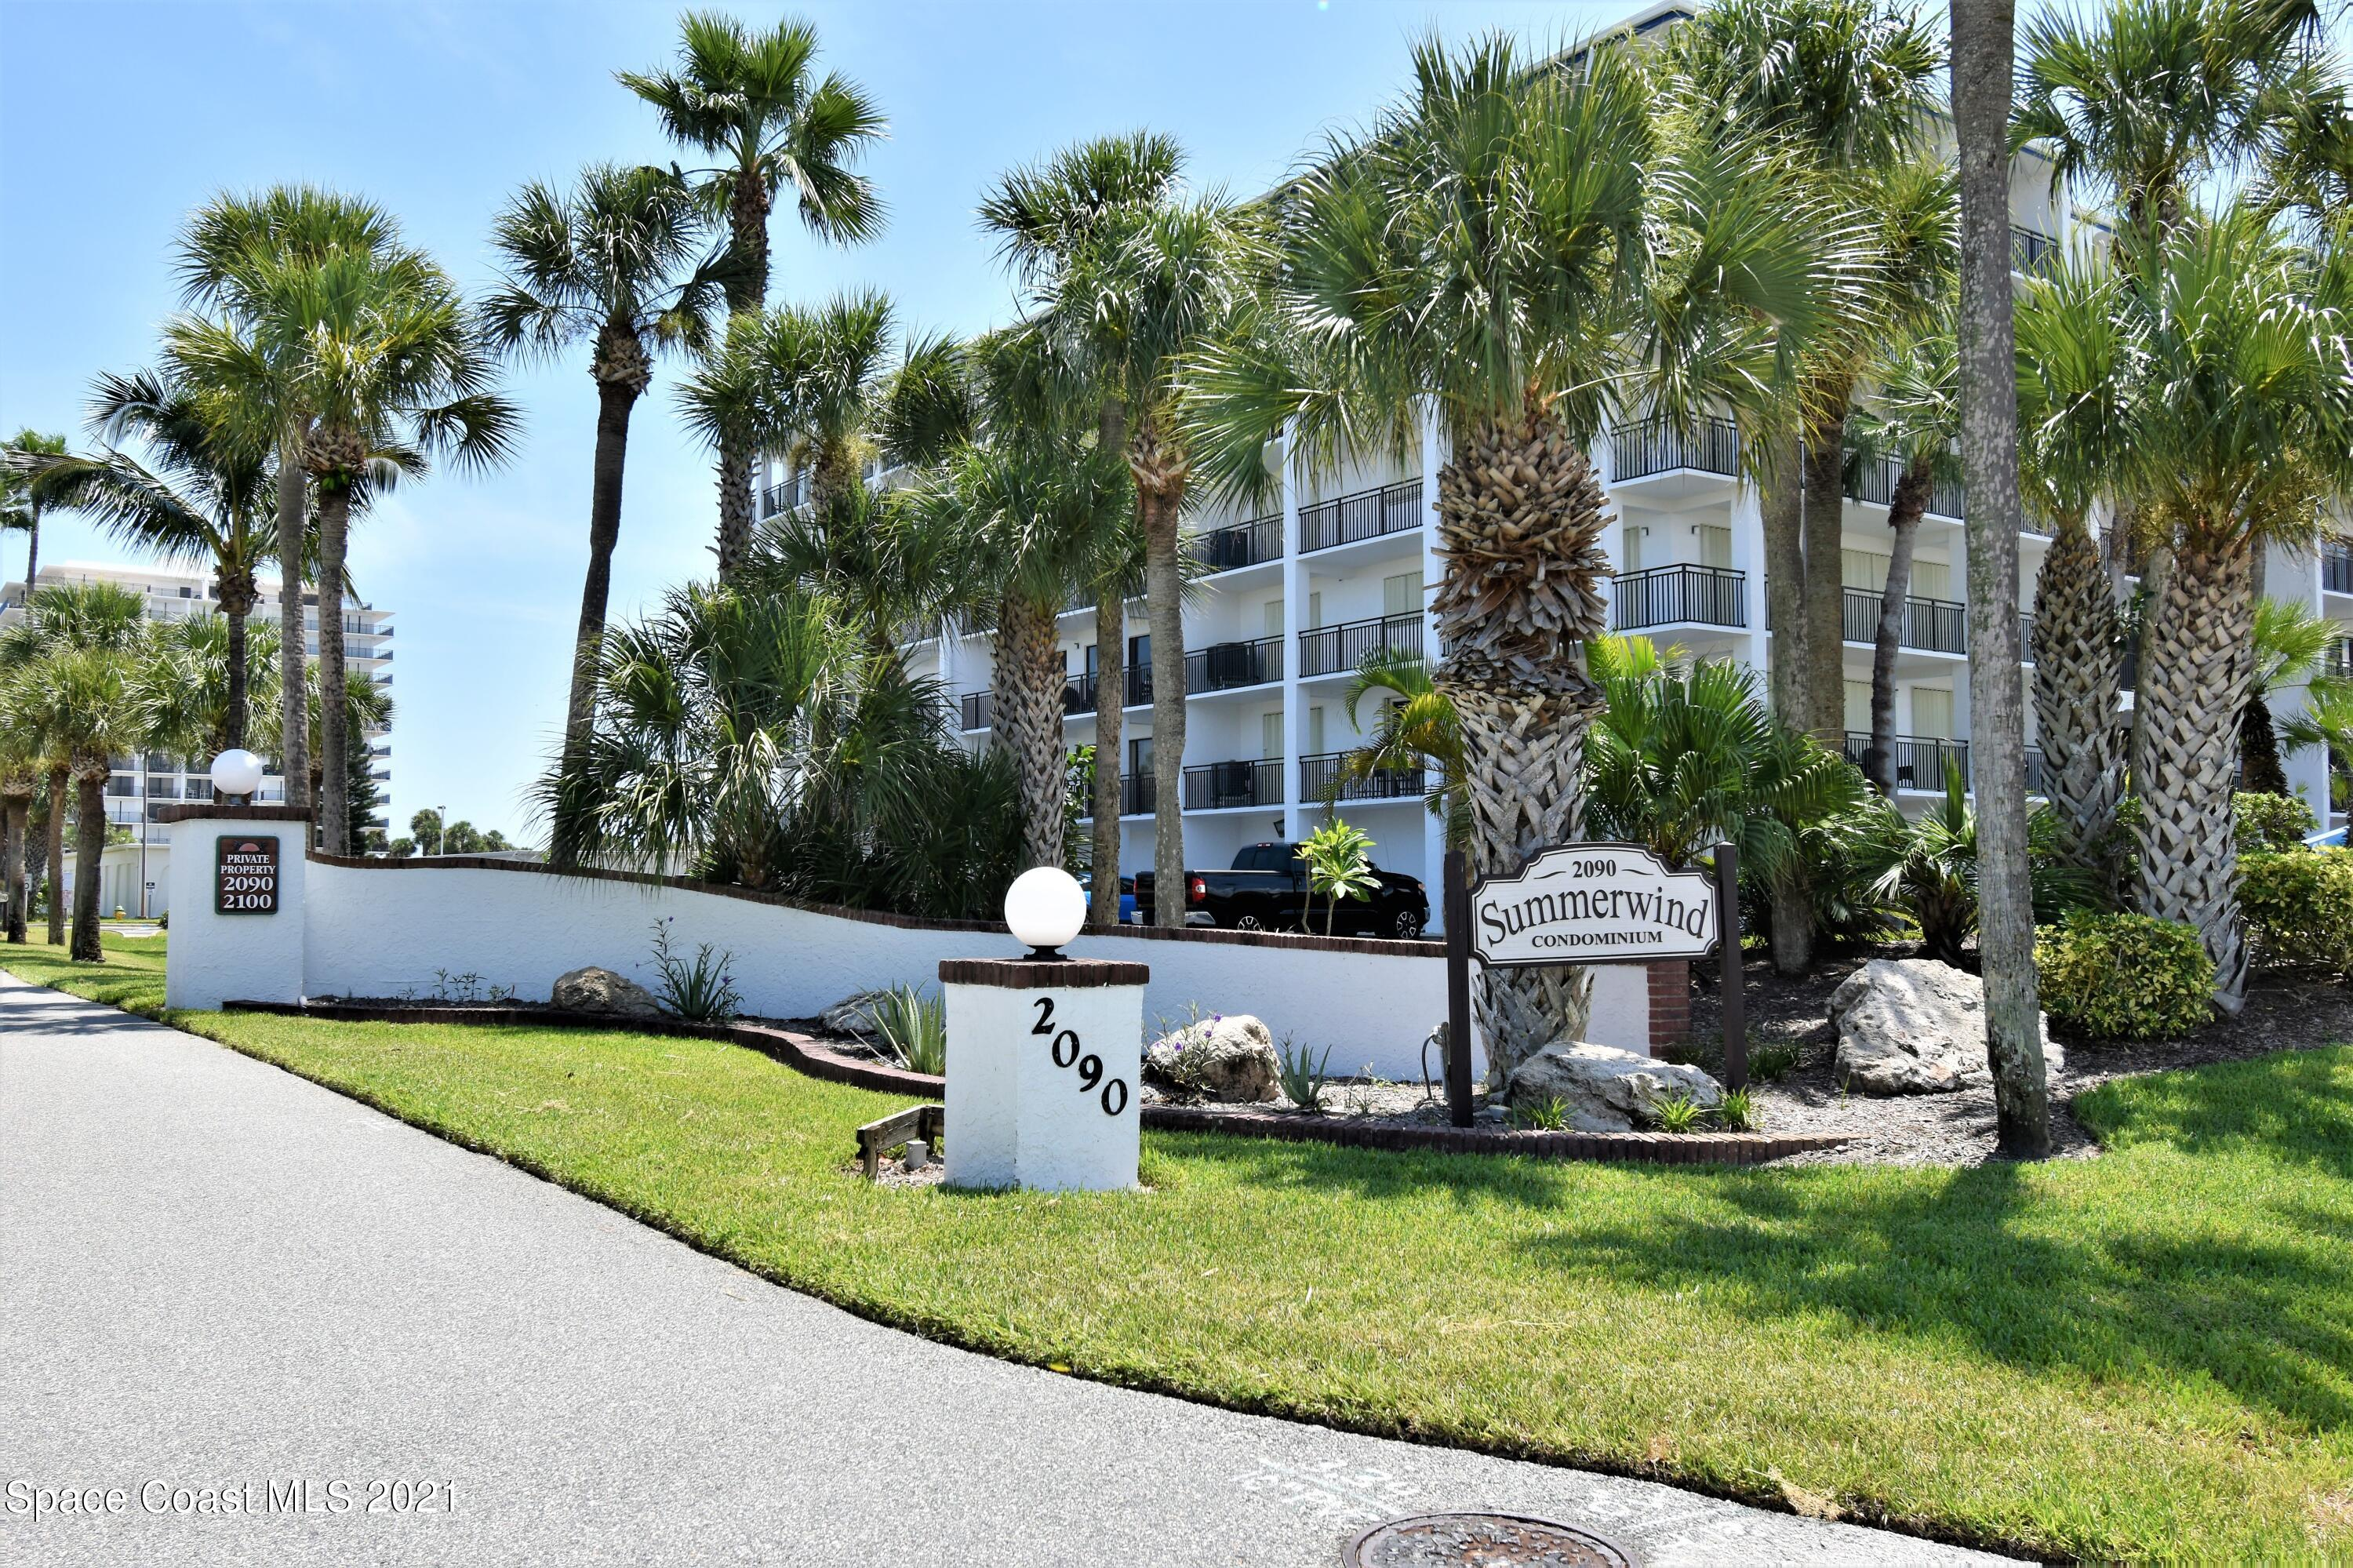 ABSOLUTELY STUNNING BEACHSIDE CONDO!! A MUST SEE! This beautiful, completely remodeled unit, located in a pristine location in Central Florida's famous Cocoa Beach is loaded with top of the line upgrades! Every single room in this 2 bedroom 2 bath, 1,600 Square Feet property has been carefully and tastefully gone through sparing no expense. Please request a list of all the upgrades due to there are too many to list. You will be happy and proud to own this amazing place. Not only because it is one of the best units, but also in a complex with amenities galore; private beach access, Pool, Tennis Court, two huge rec rooms with plenty of room to entertain, watch movies, pool table, Fitness Center and a Sauna. The complex also features a climate controlled storage room, your own private garage! This unit also features installed hurricane shutters but the owners paid $28,000 for new impact resistant sliders as well, for maximum protection. The complex is next to Sidney Fischer Park, walking distance to restaurants, Shops, Publix, entertainment, Banks and more. 5 miles to Port Canaveral, 30 minutes to Kennedy Space Center and about 1 hour to Orlando.